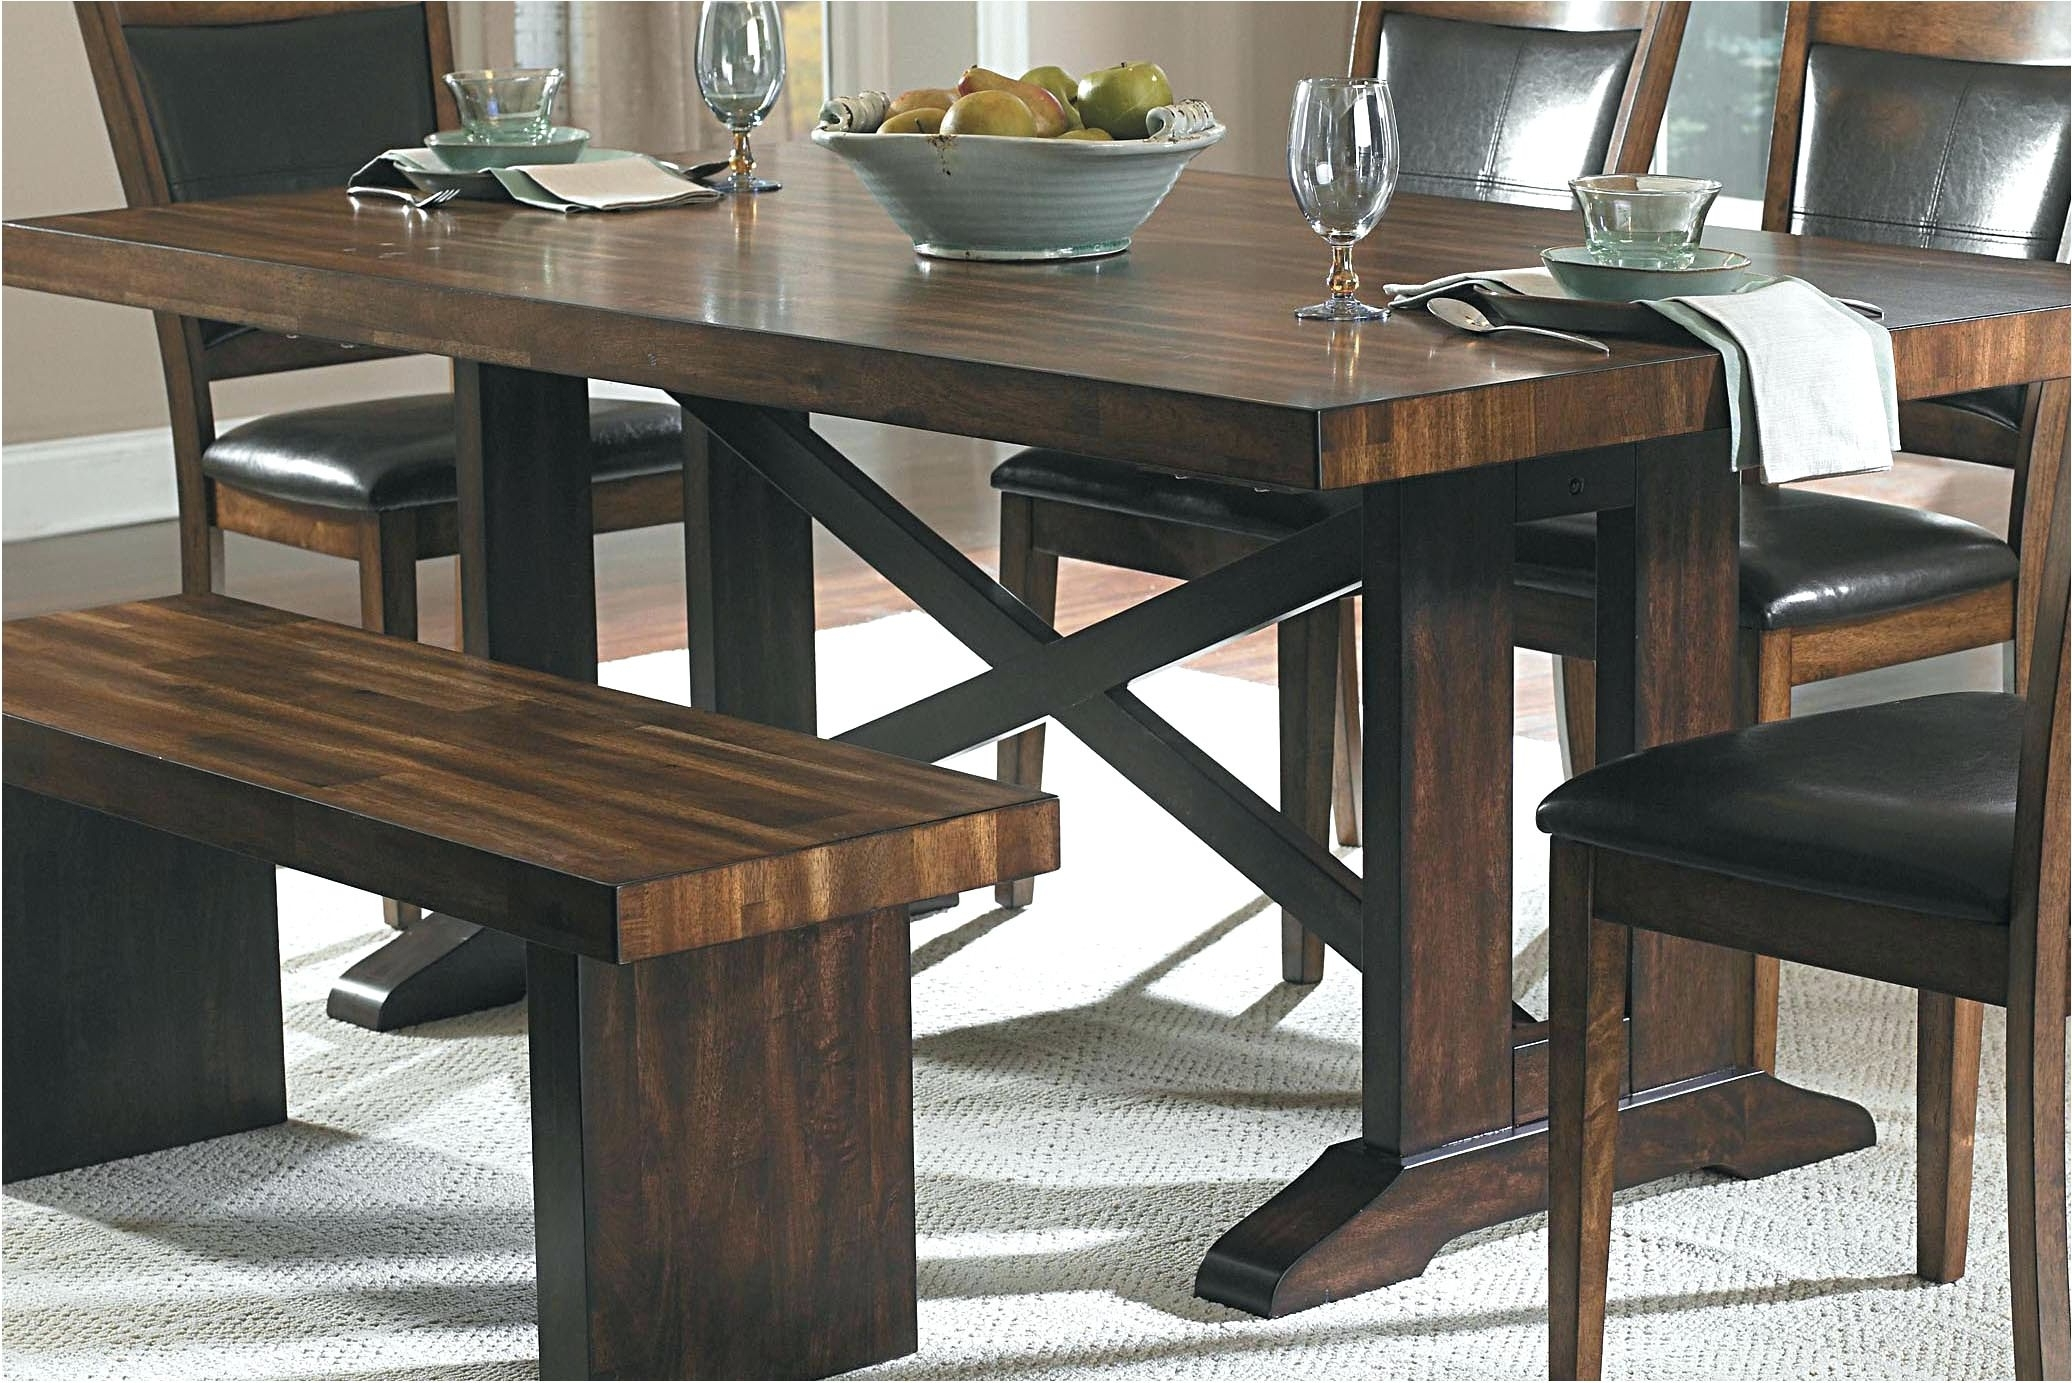 Indoor Picnic Style Dining Tables Pertaining To Most Recent Terrific Picnic Table Dining Room New Picnic Style Dining Room Table (View 14 of 25)